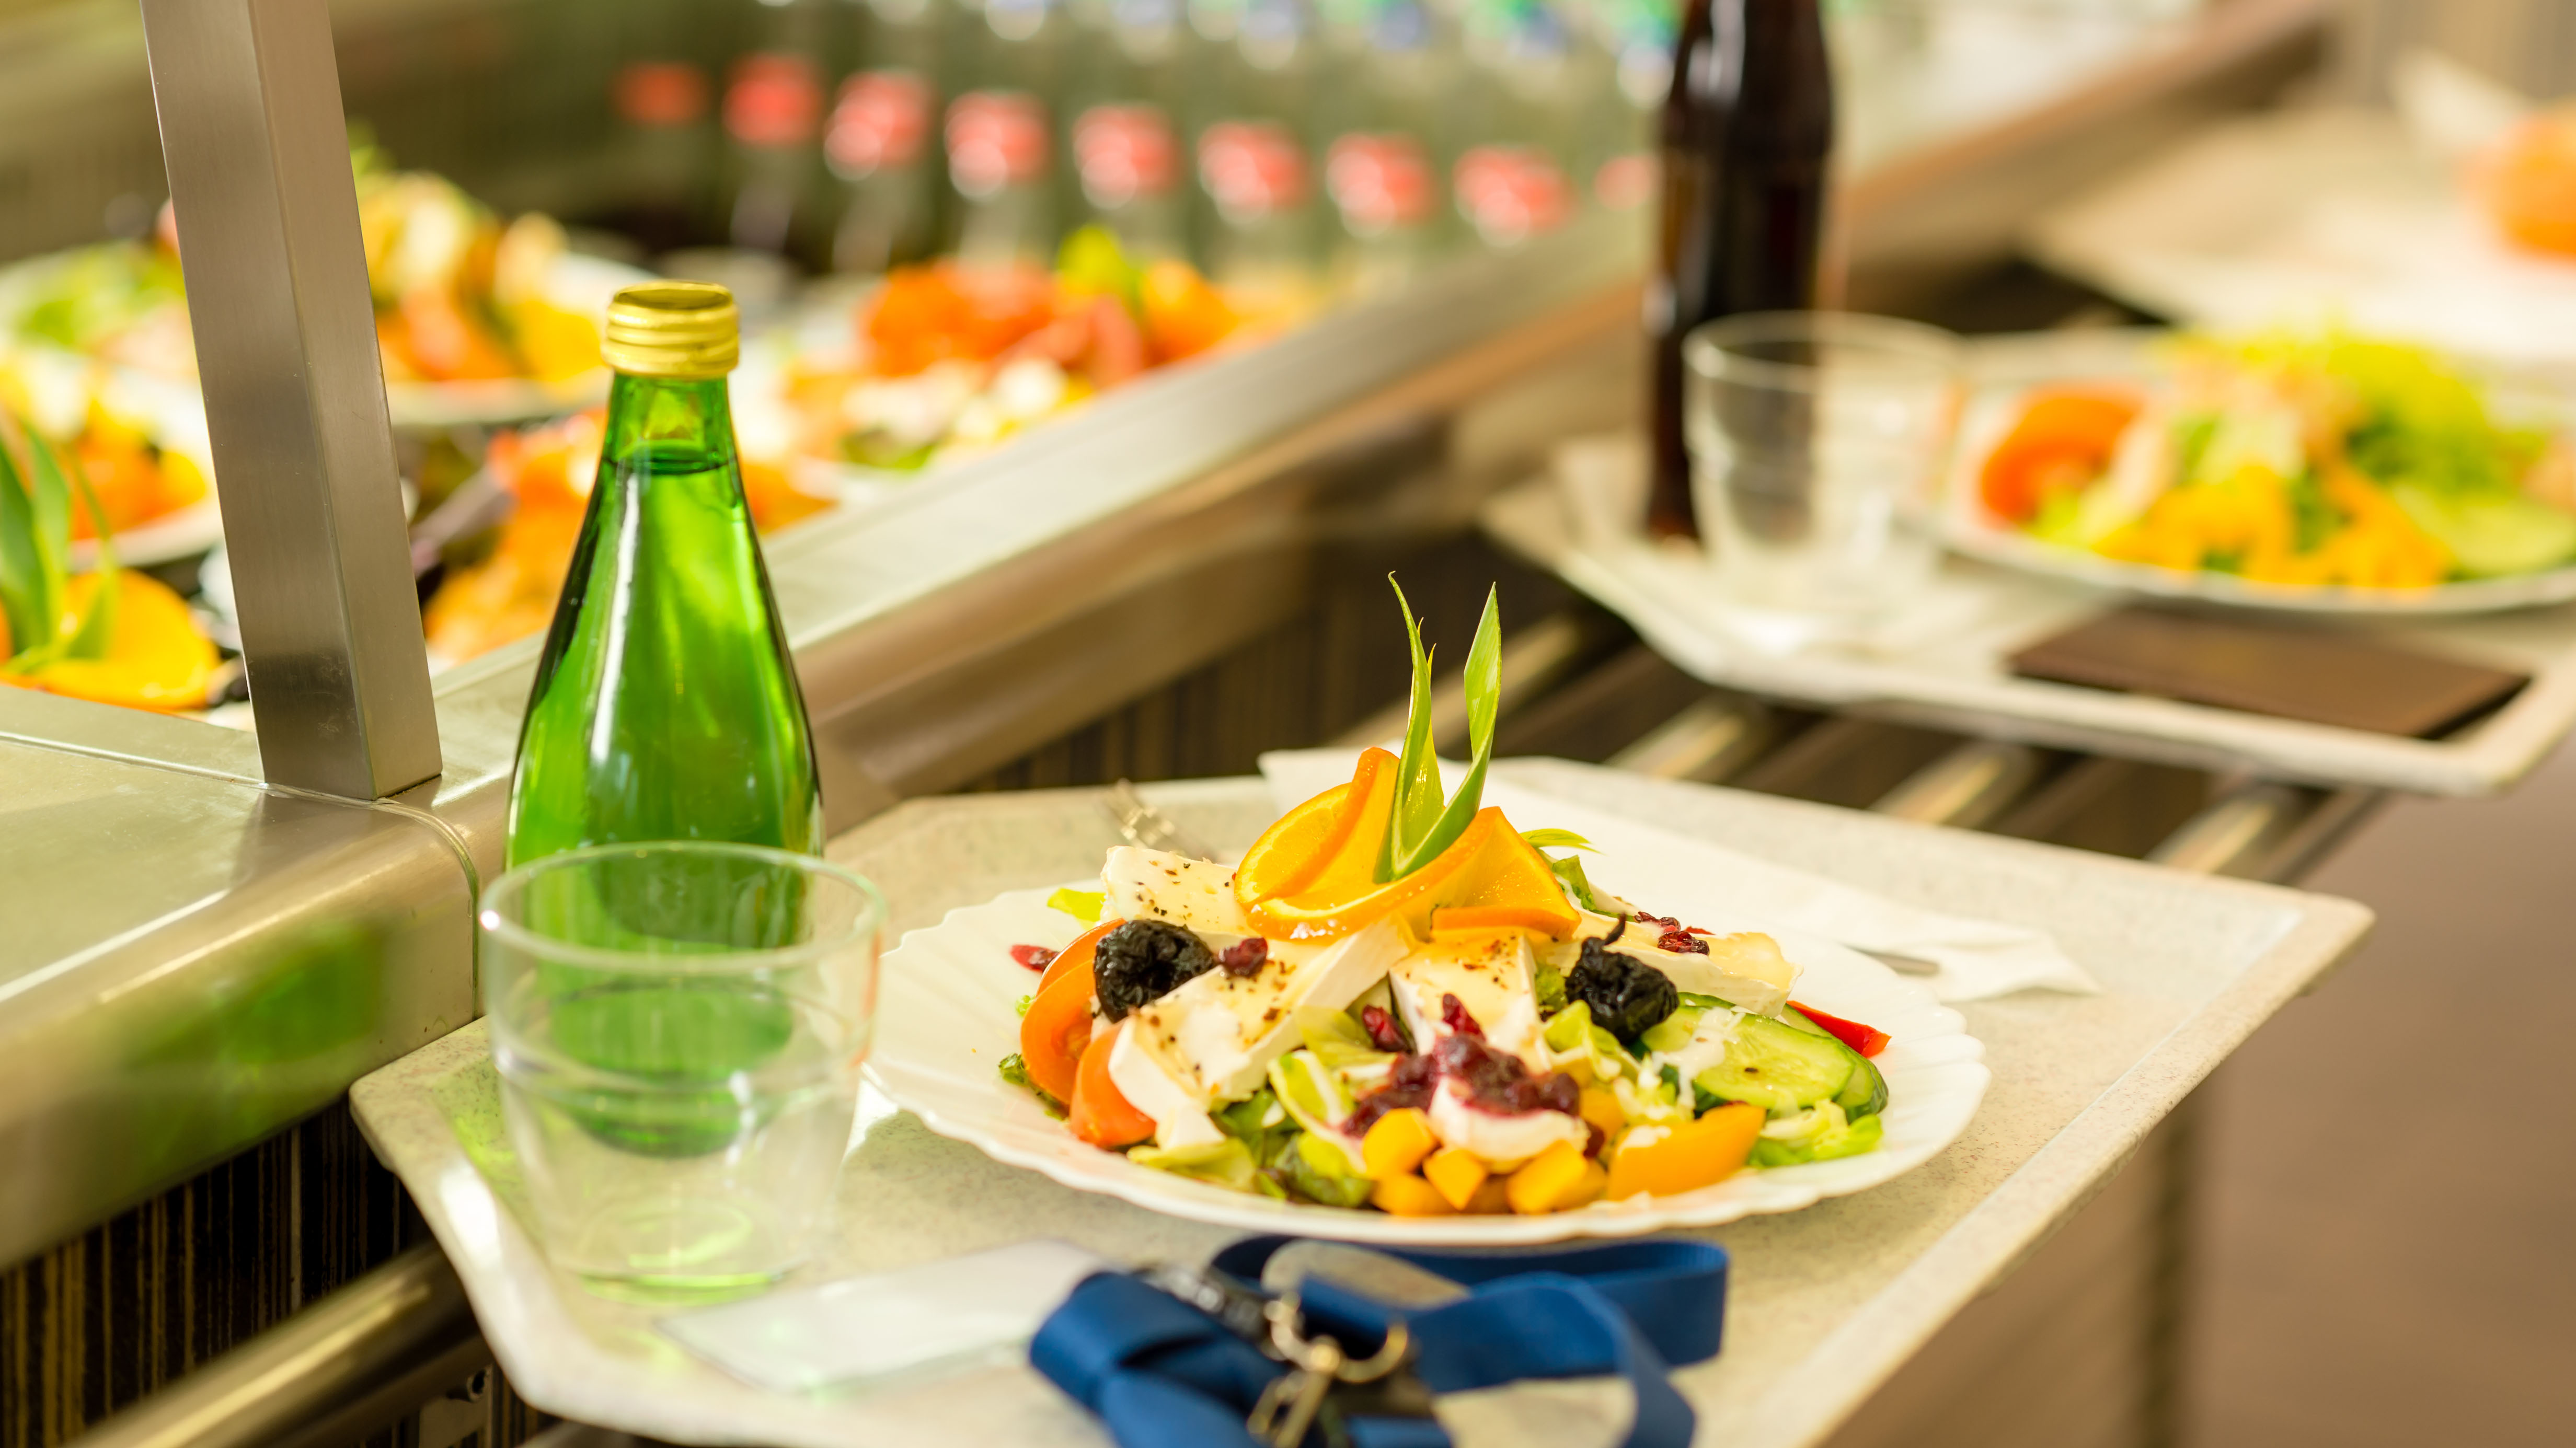 Workplace Menu Can Promote Women's Health